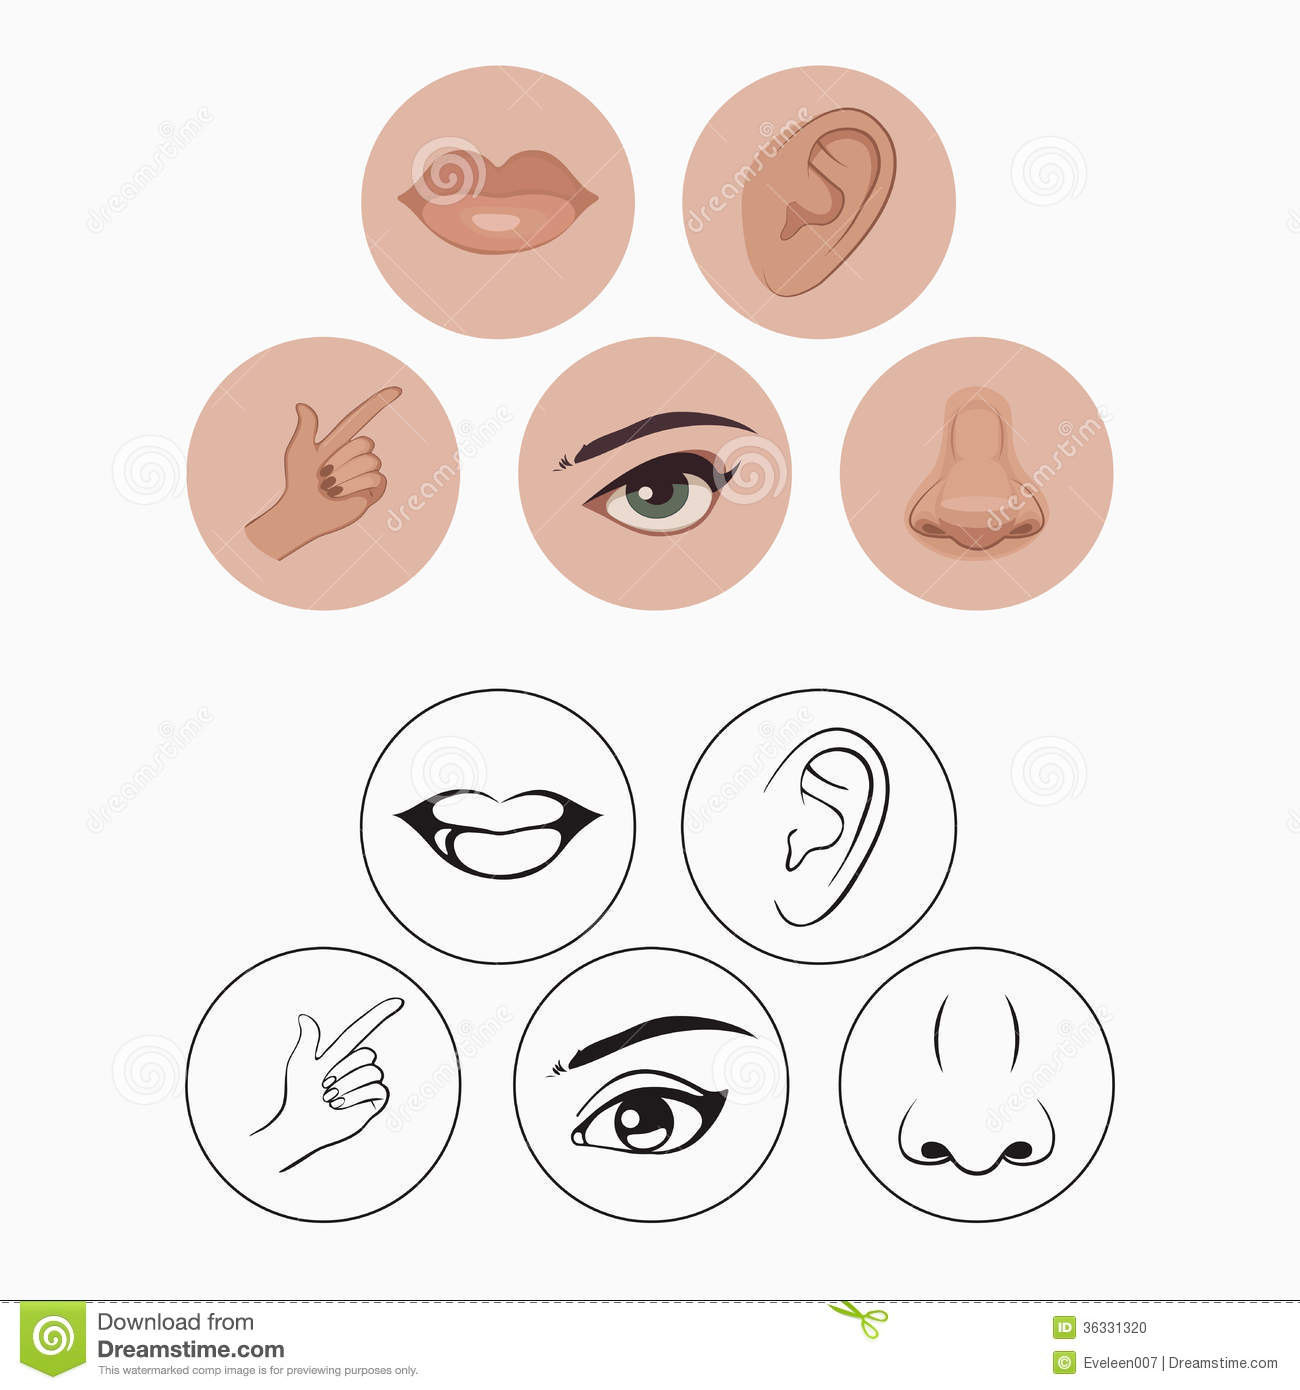 Five Senses Clipart - Clipart Kid